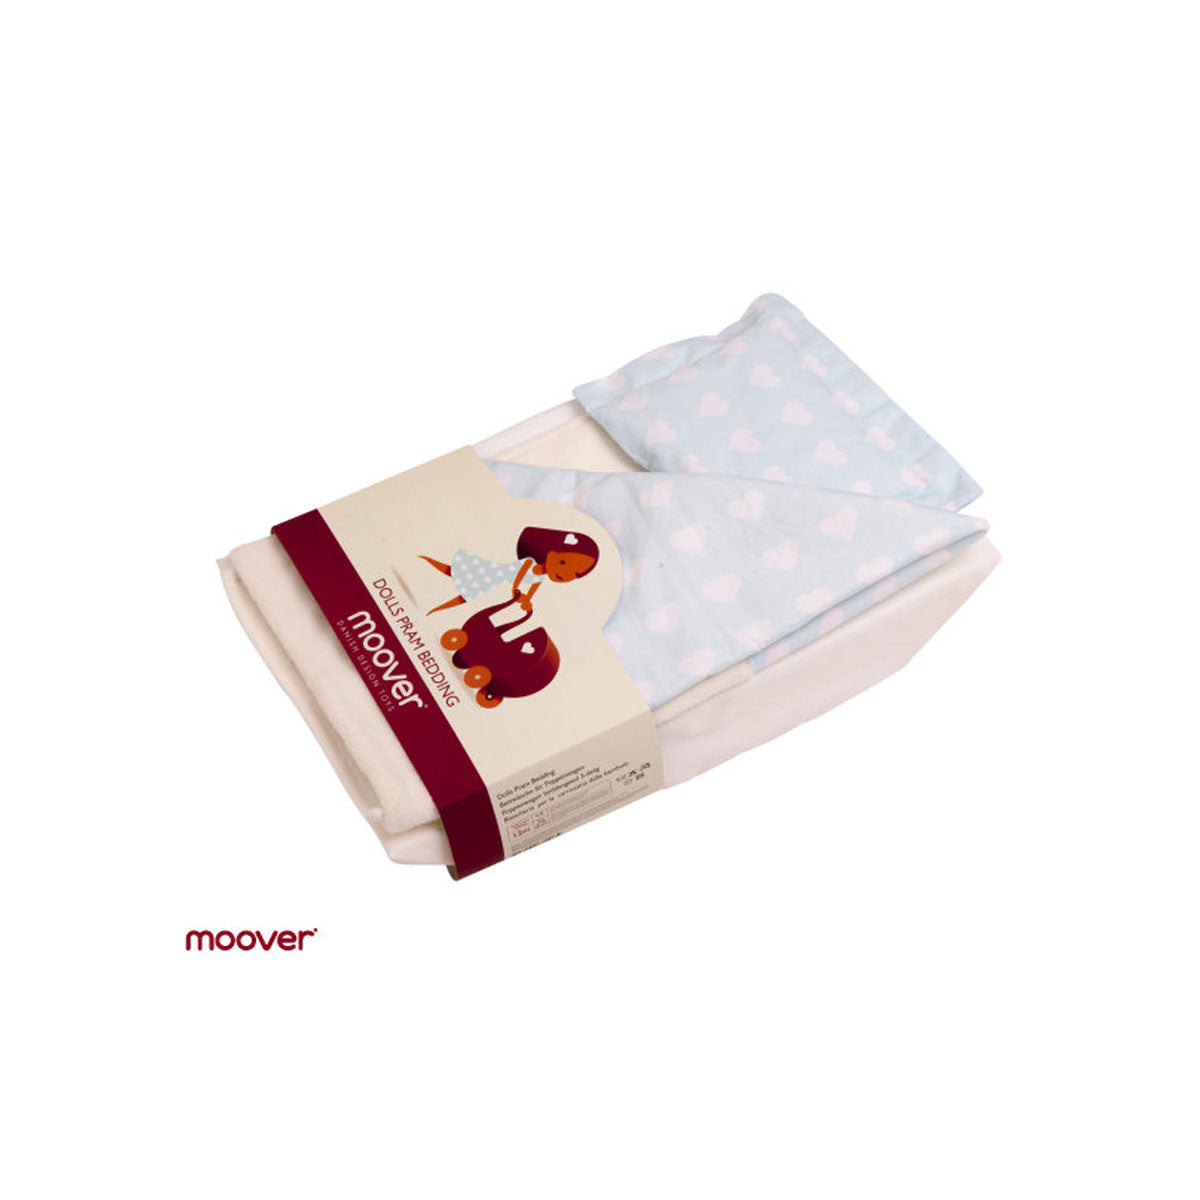 Moover Pram Dolls Bedding  Blue and White - Moover Toys - Little Earth Nest - 4